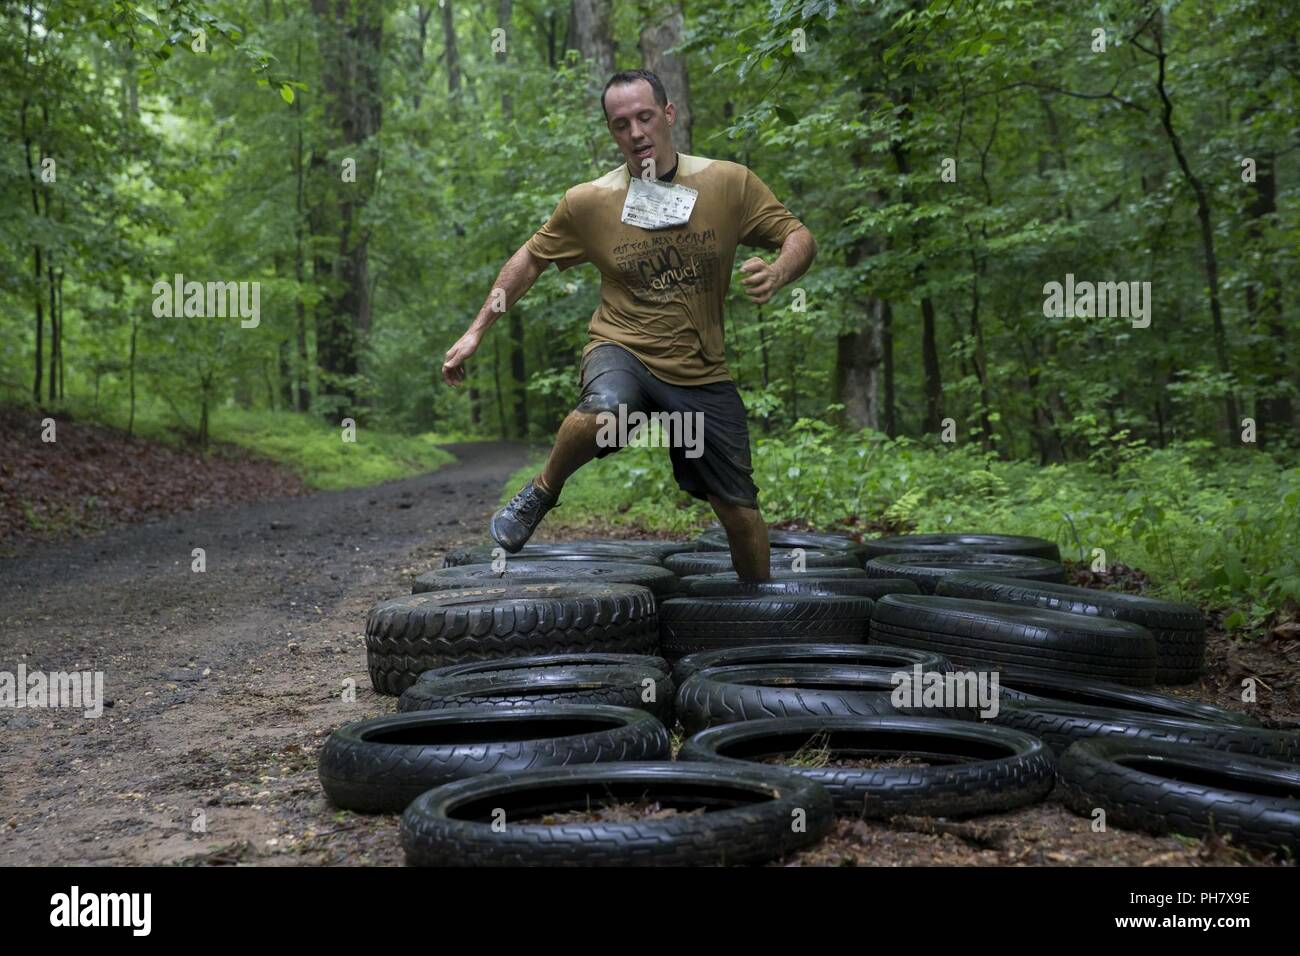 A Participant navigates a tire obstacle during the annual Marine Corps Marathon (MCM) Run Amuck at Marine Corps Base Quantico, Va., June 23, 2018. The Run Amuck is the MCM's messiest mud and obstacle course consisting of a four-mile trail with 21 challenges to include body weight exercises, rope climbs, and mud pits. - Stock Image